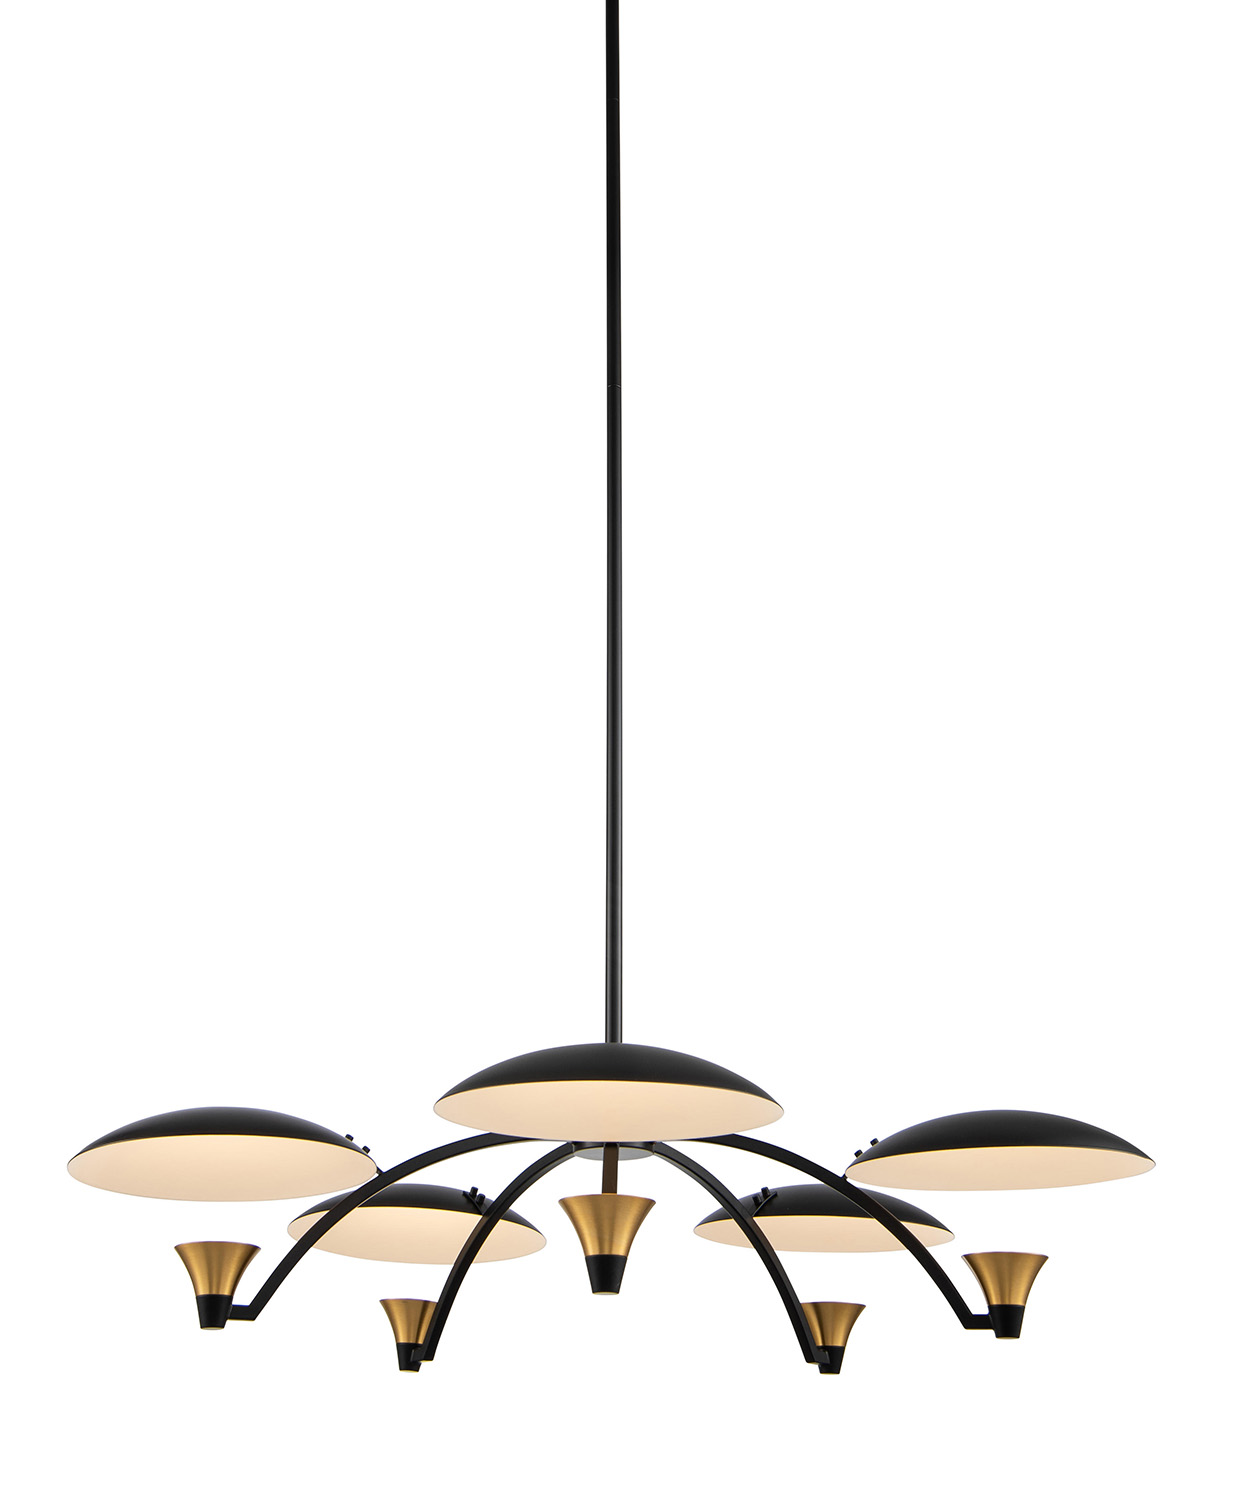 modern chandelier with black shades and brass accents